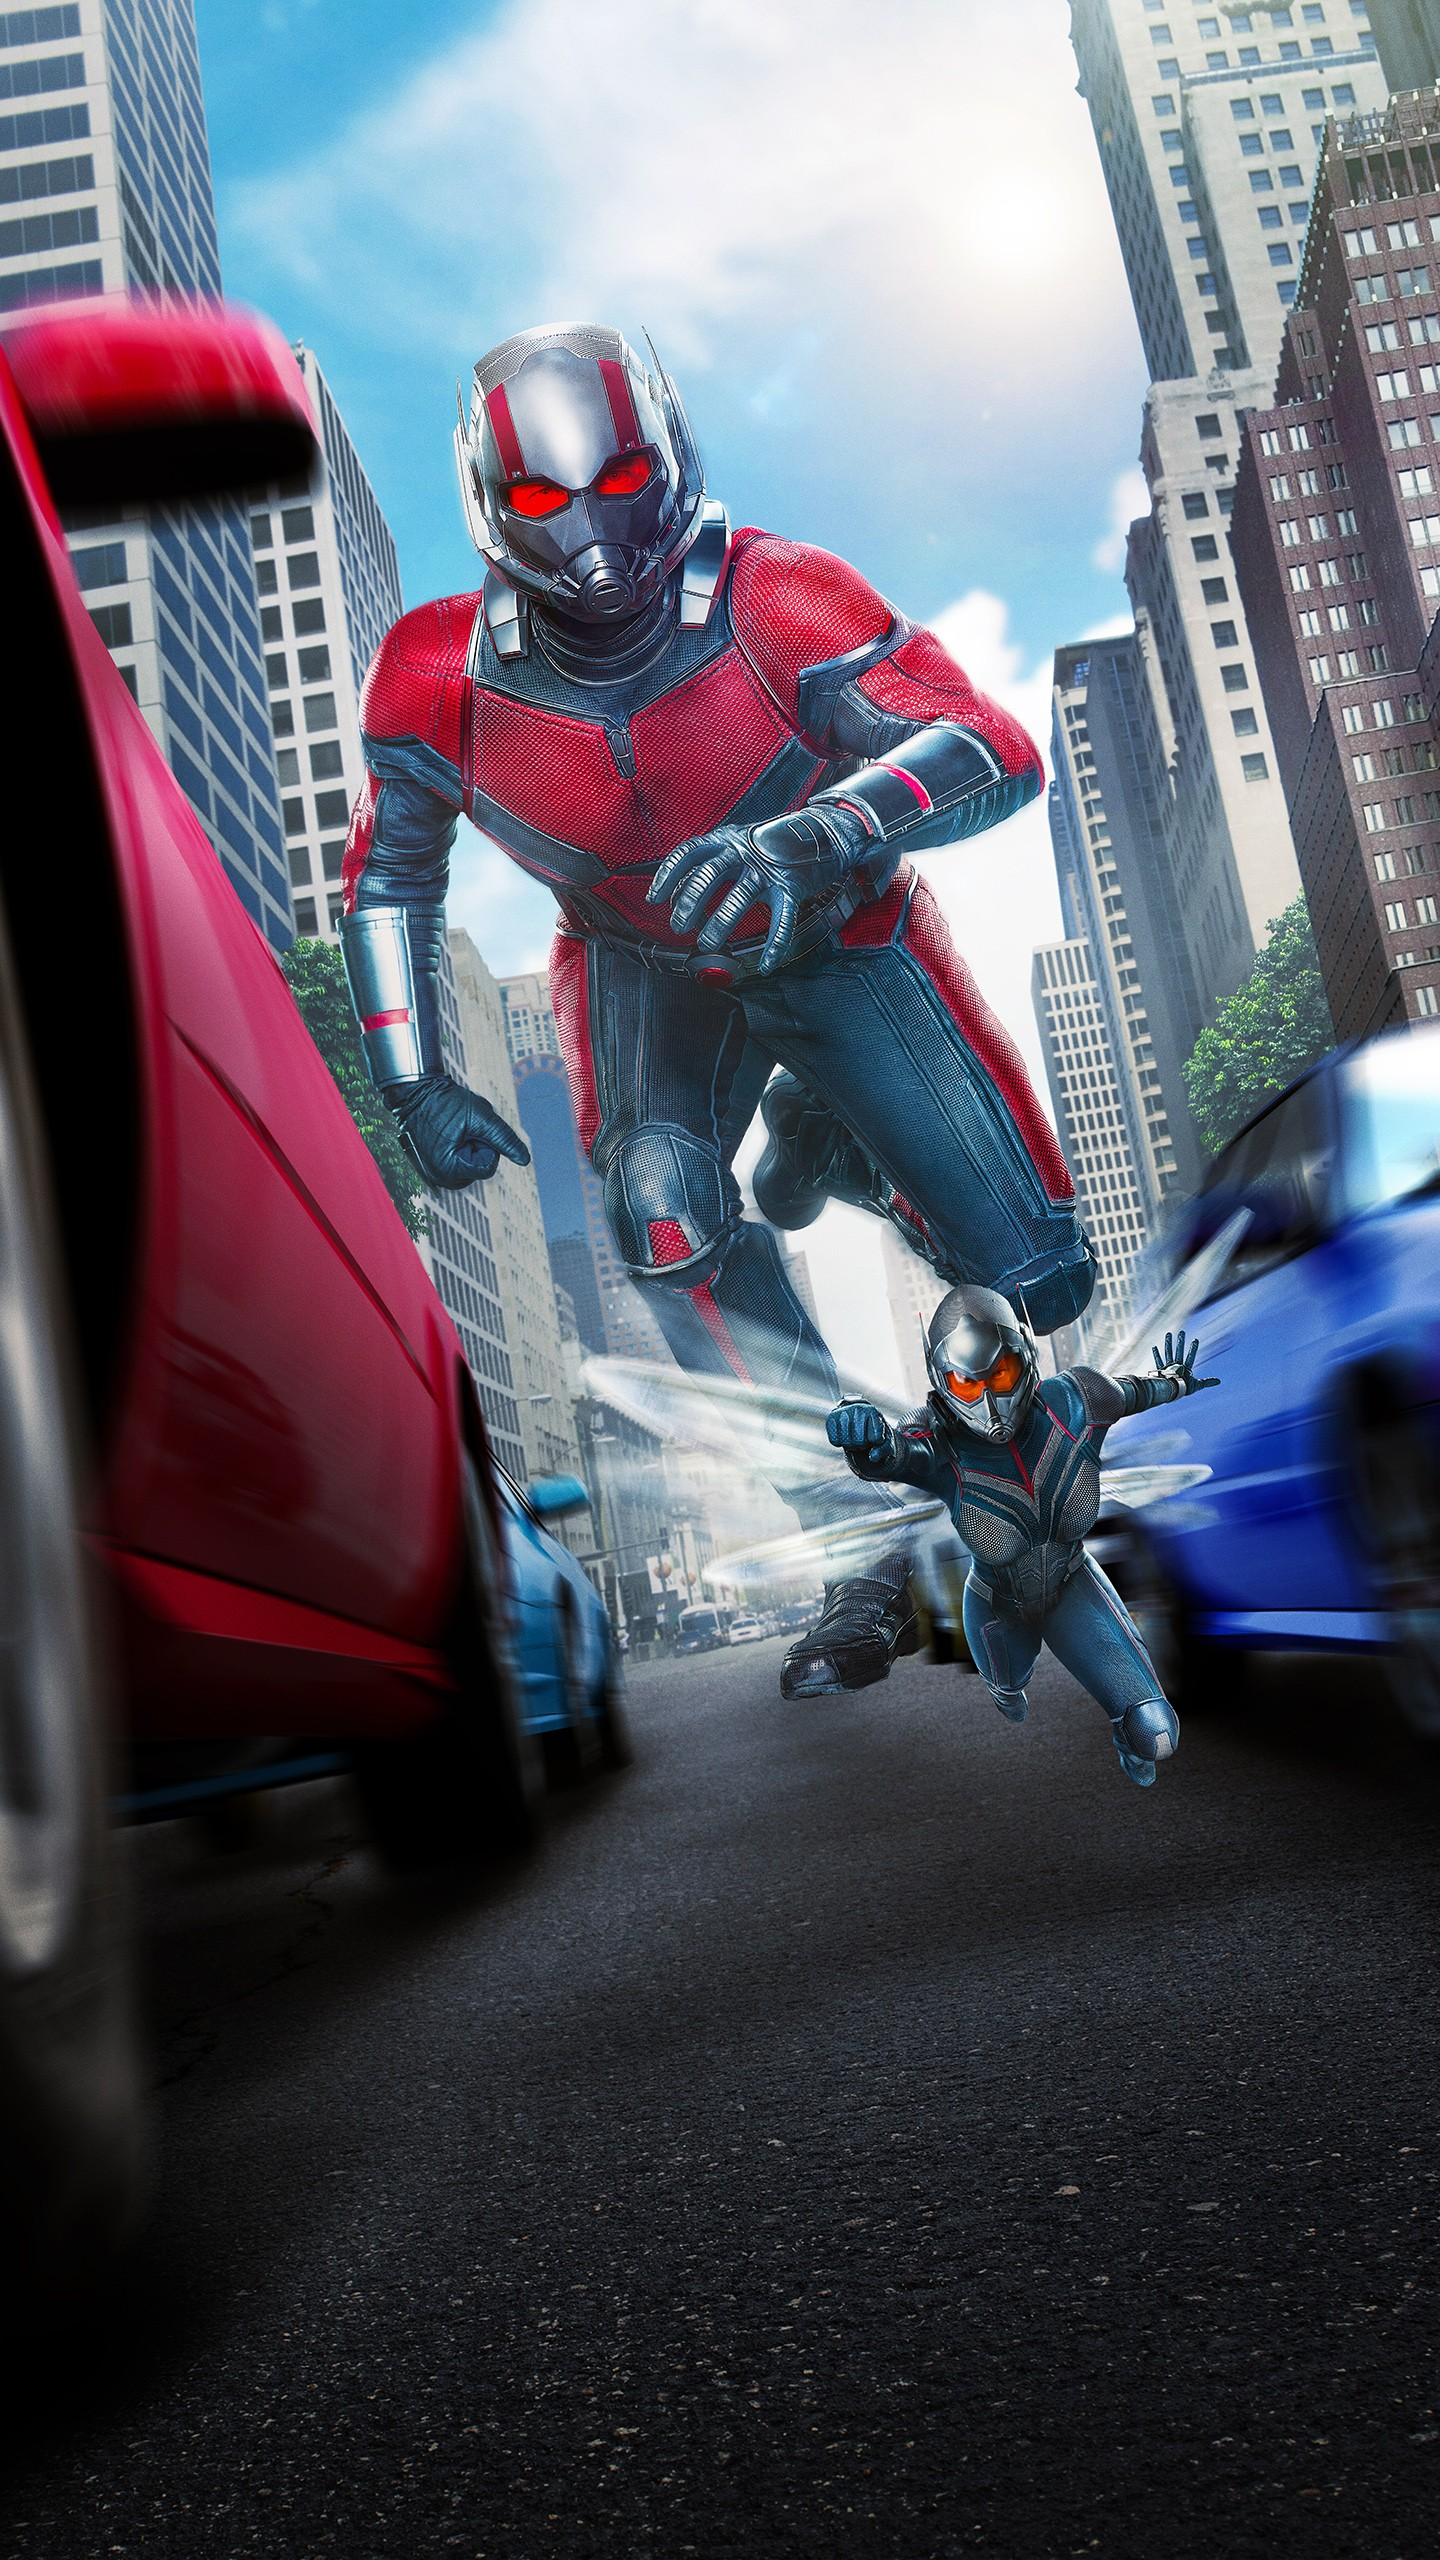 Wallpapers Hd Iphone 7 Ant Man And The Wasp 4k 8k Wallpapers Hd Wallpapers Id